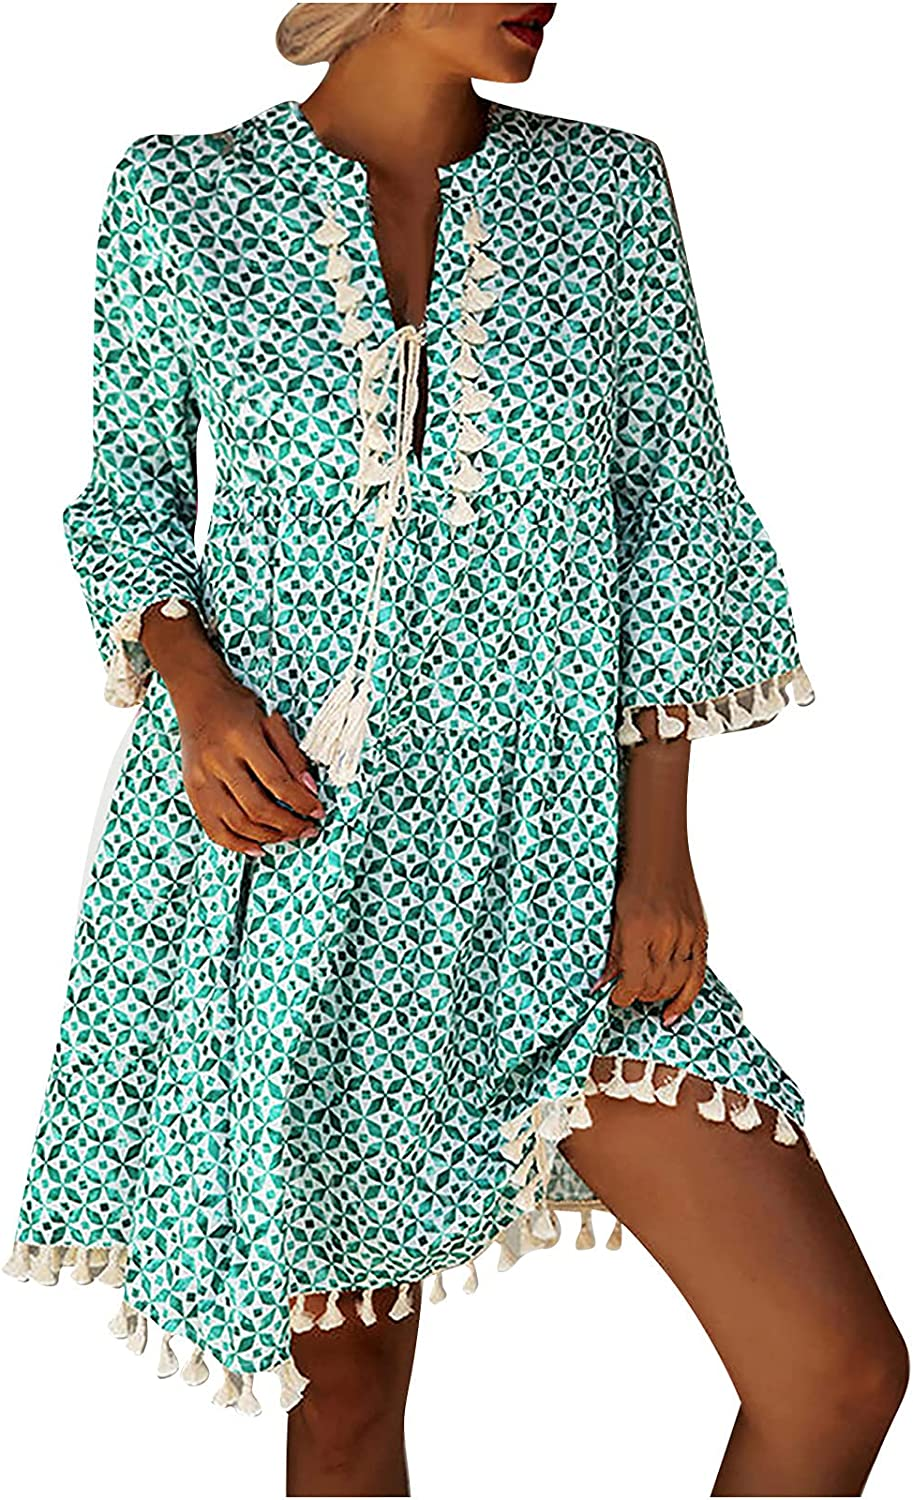 Howley New mail order Women's Summer Our shop most popular Dresses Casual Sleeve Swing Tassel D Short